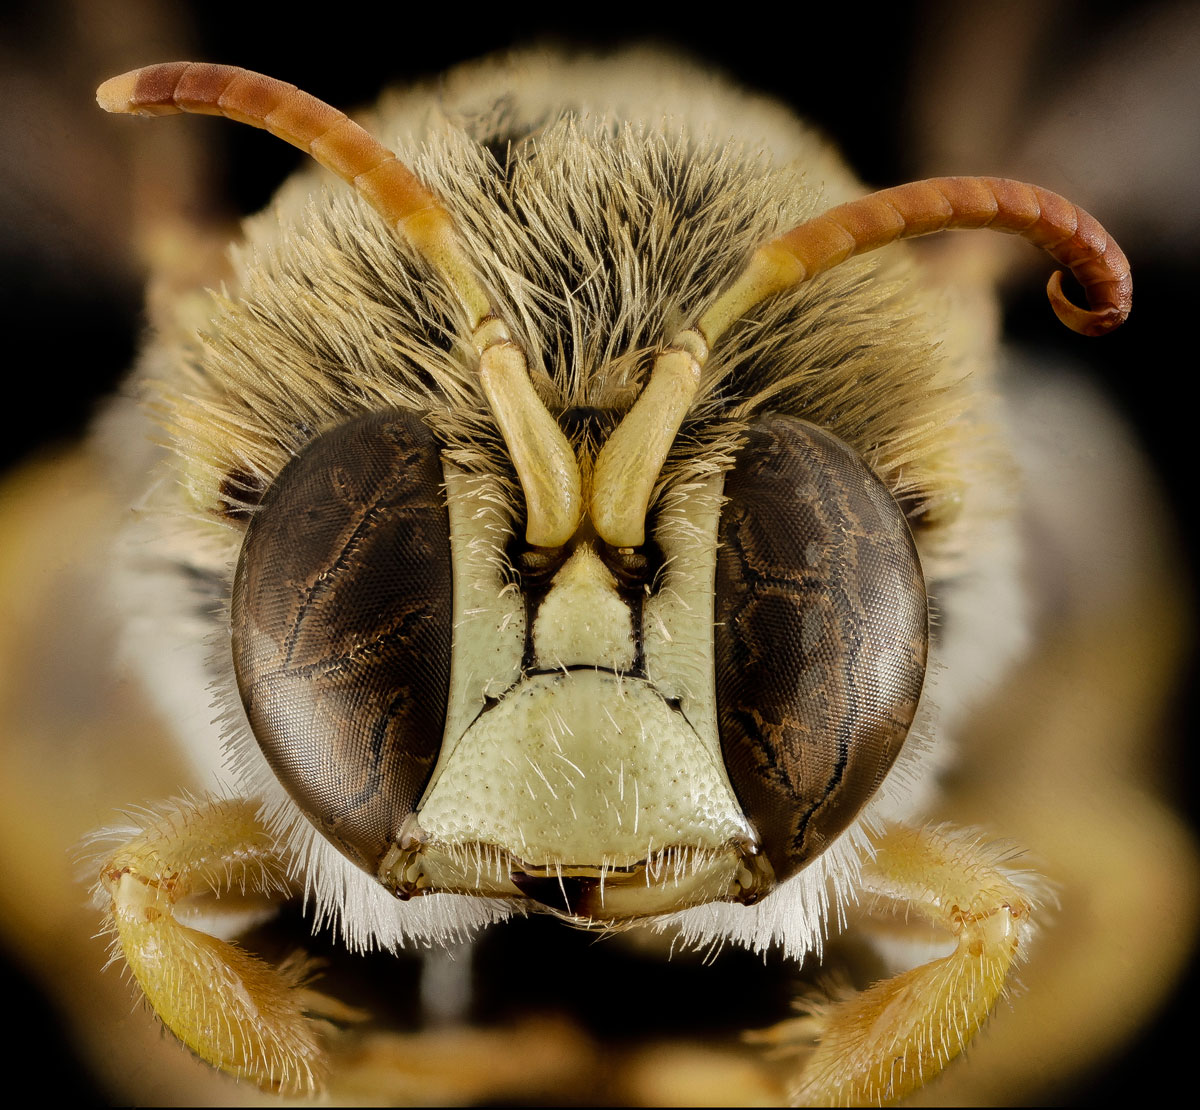 close-ups-of-insect-eyes-by-usgs-biml-10